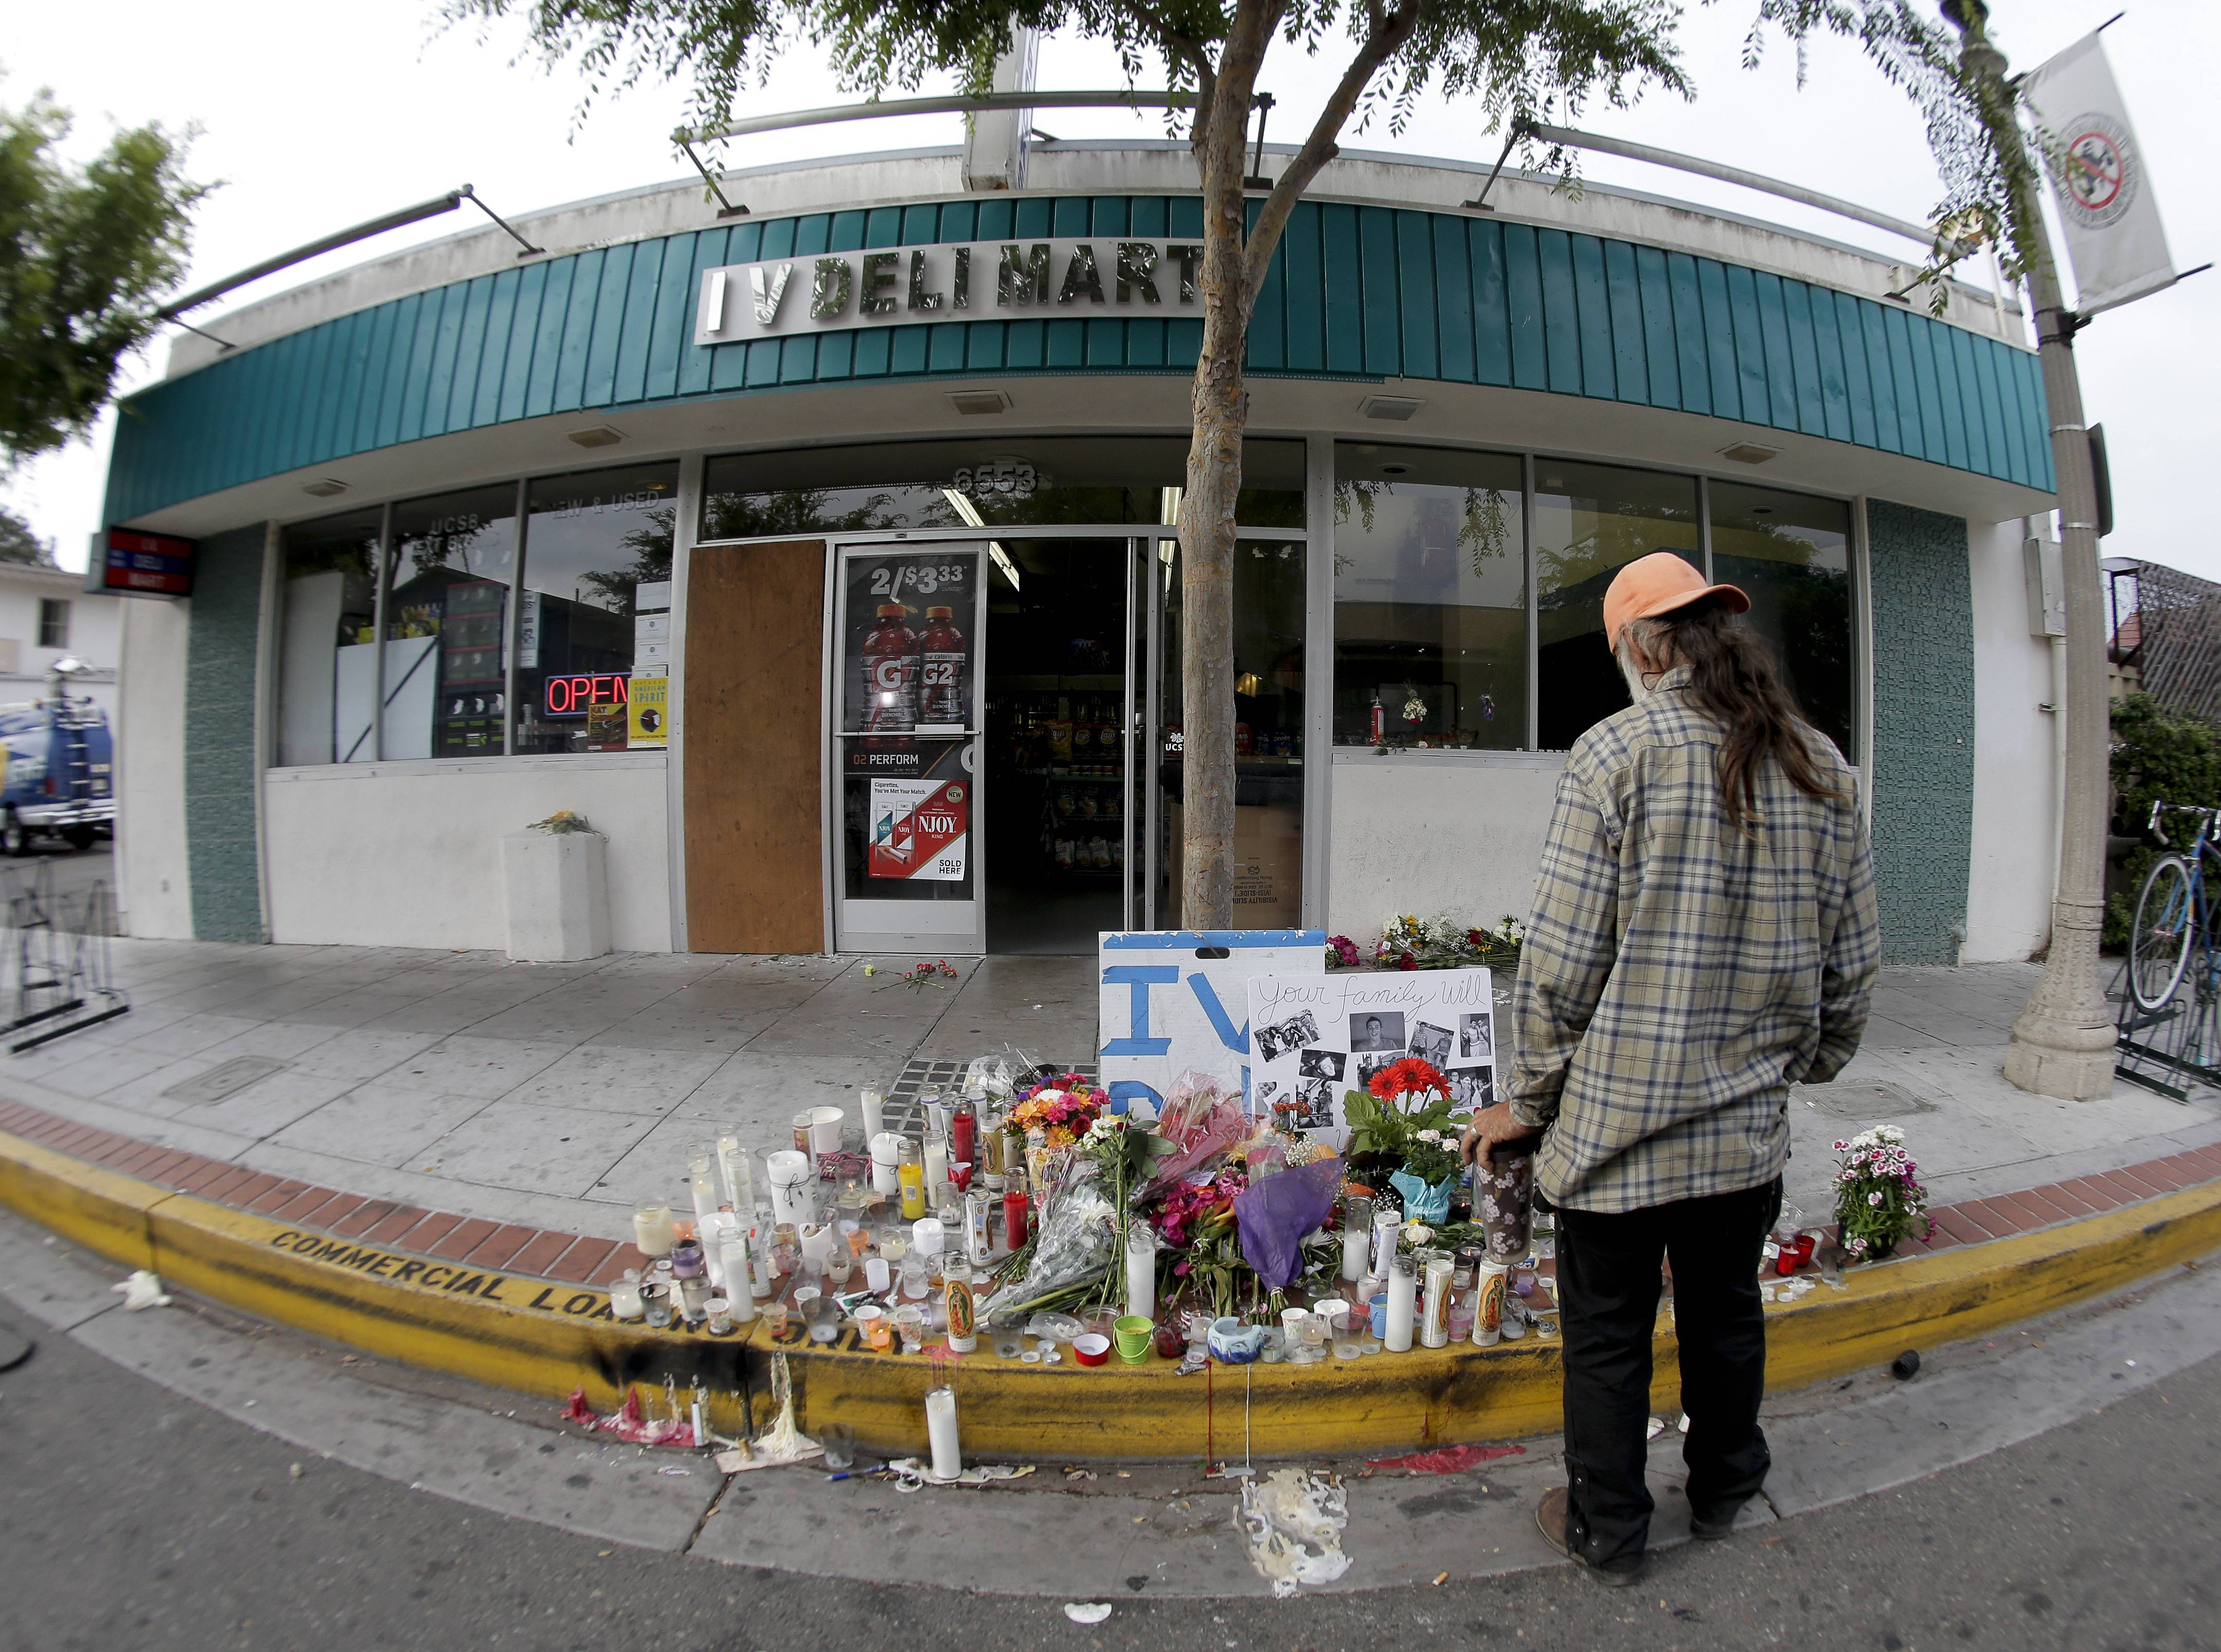 A passer-by pays his respects at a makeshift memorial in front of the IV Deli Mart, Sunday, the scene of a drive-by shooting Friday in the Isla Vista area near Goleta, Calif.